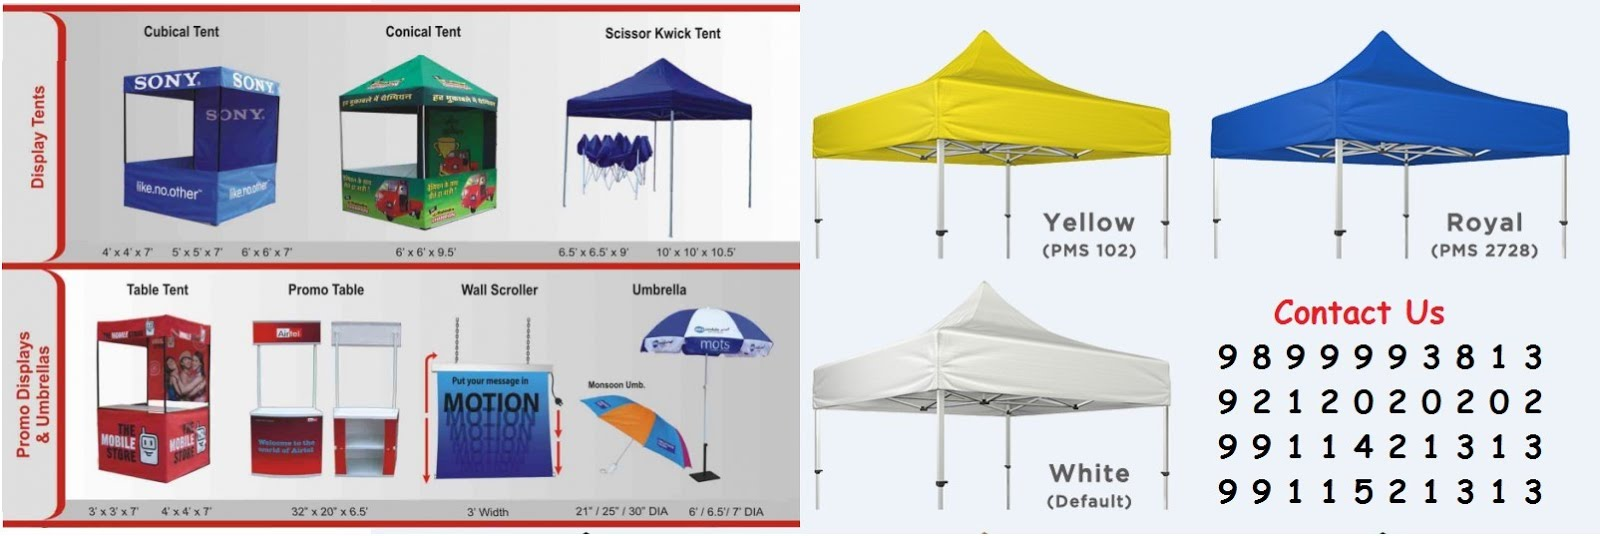 Marketing Tents for Sale in Hyderabad, Advertising Tent